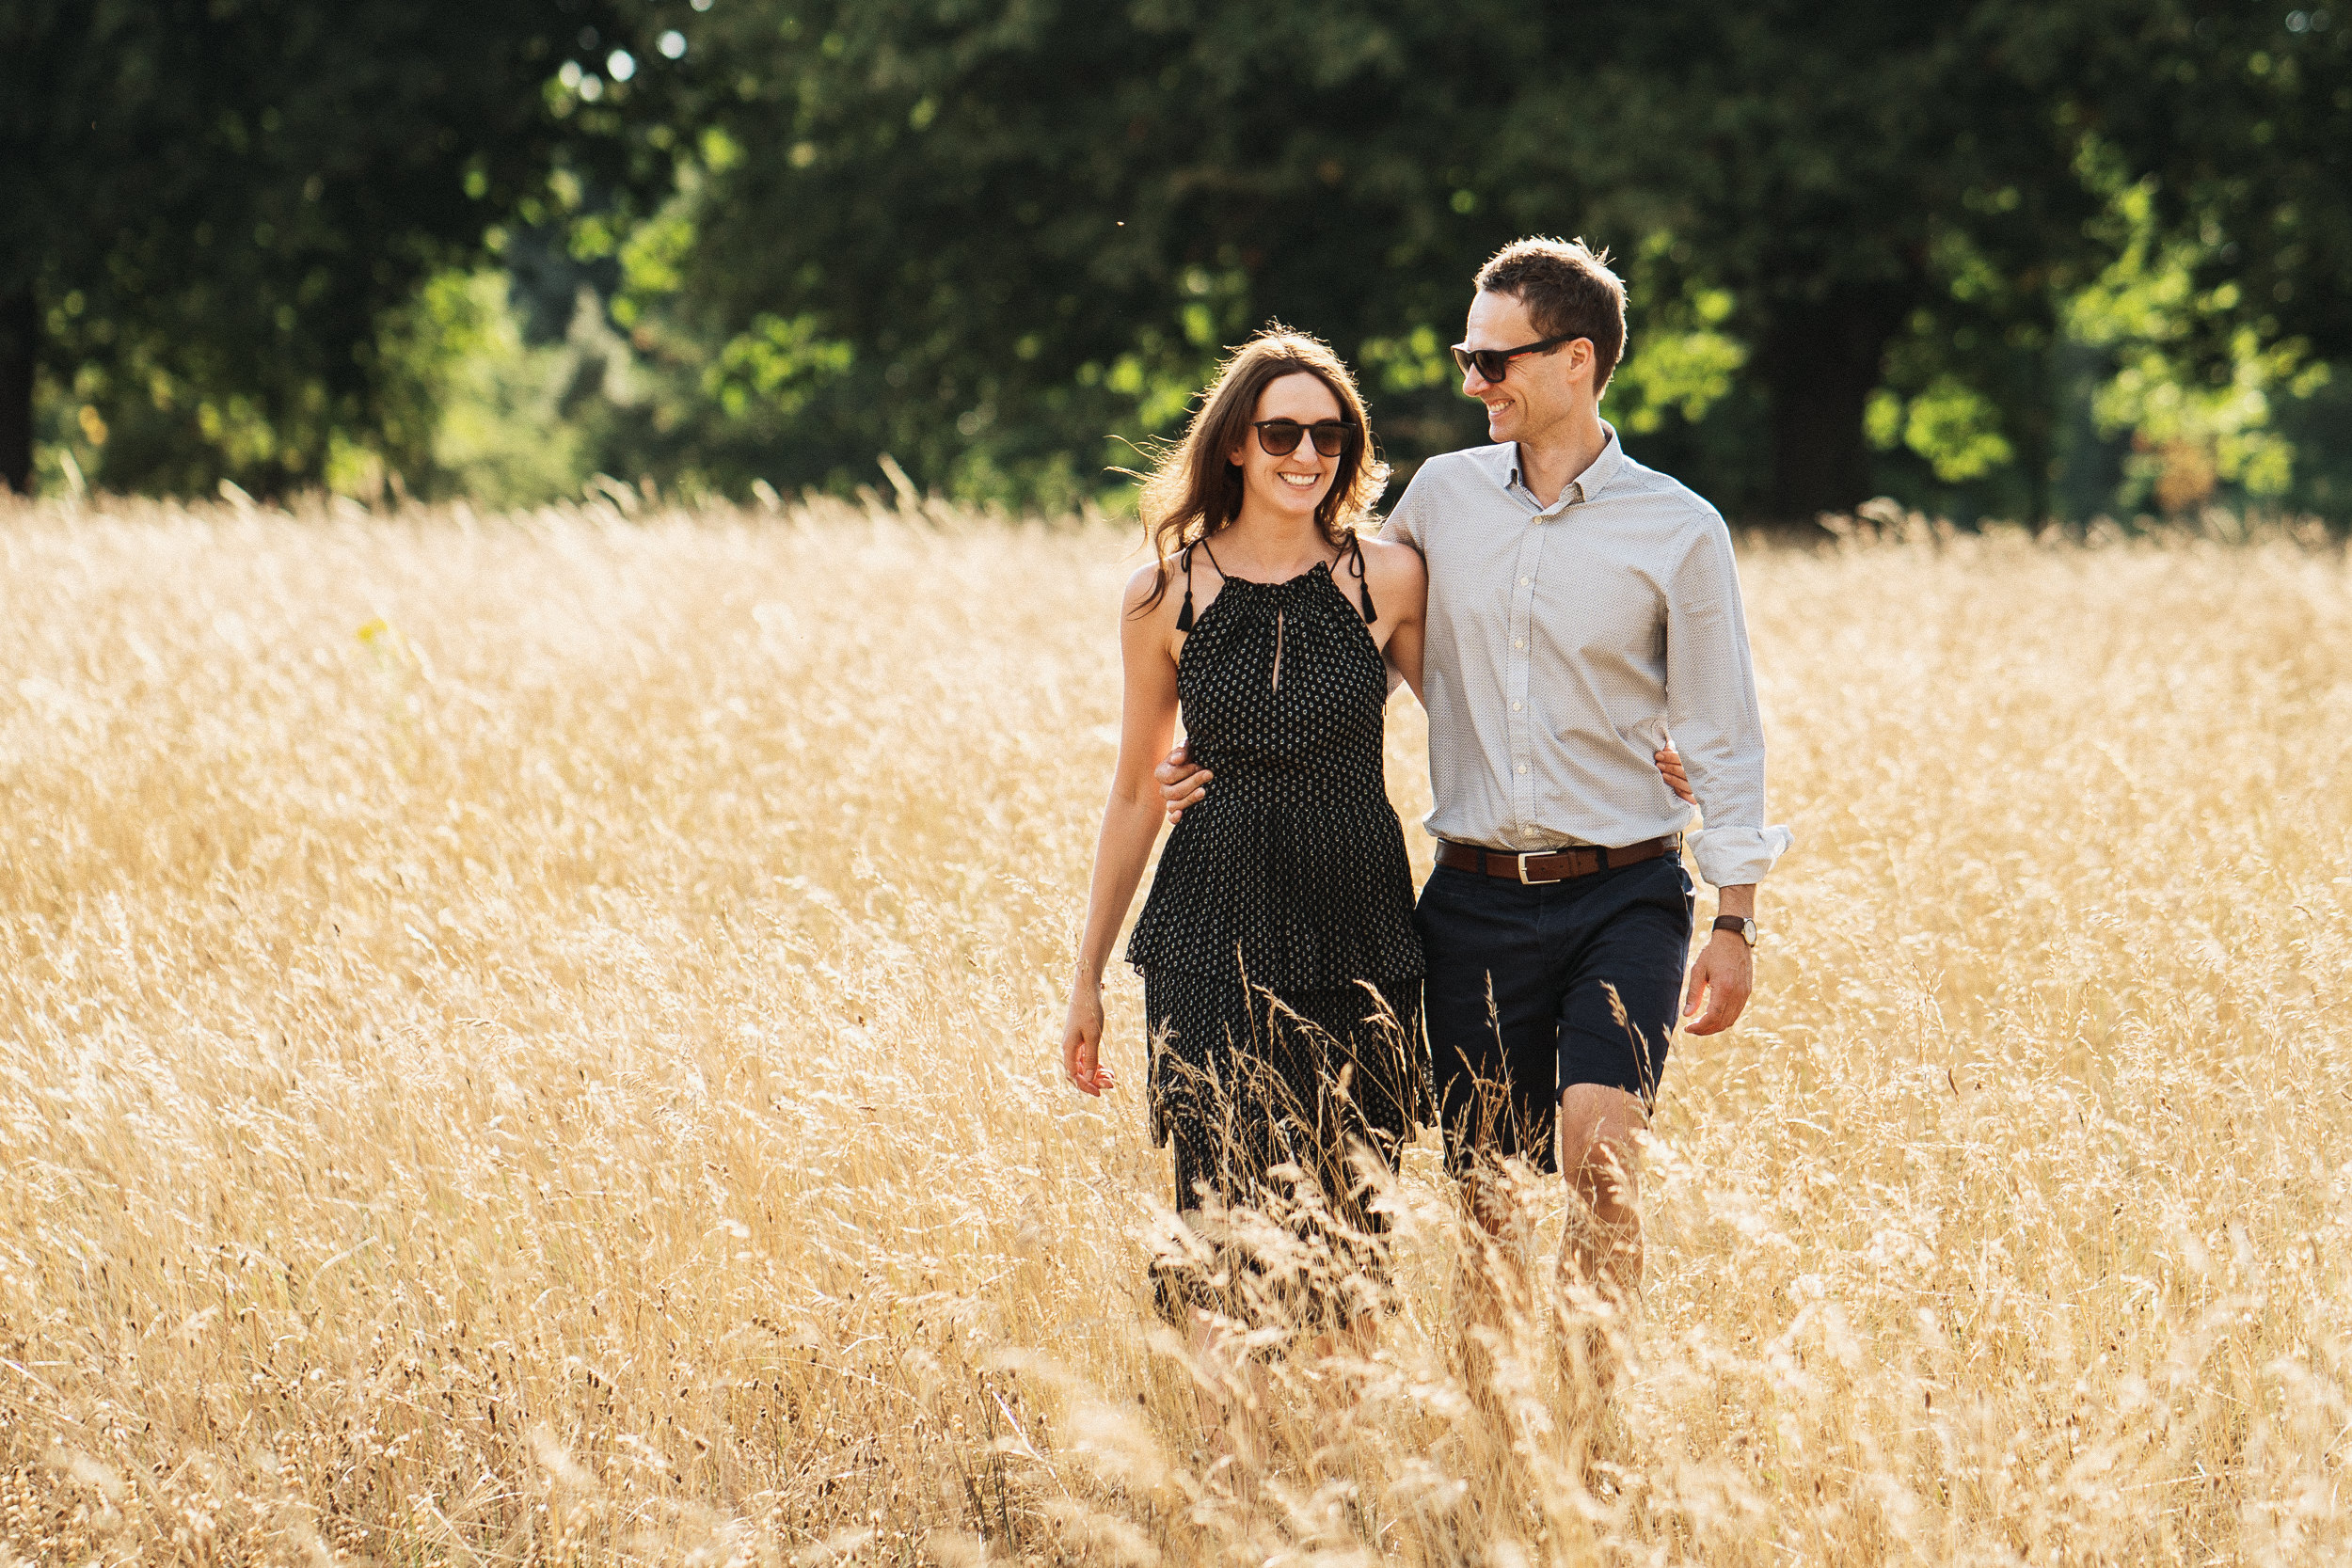 Engagement Shoot on Clifton Downs - Portrait of the couple walking on the Downs